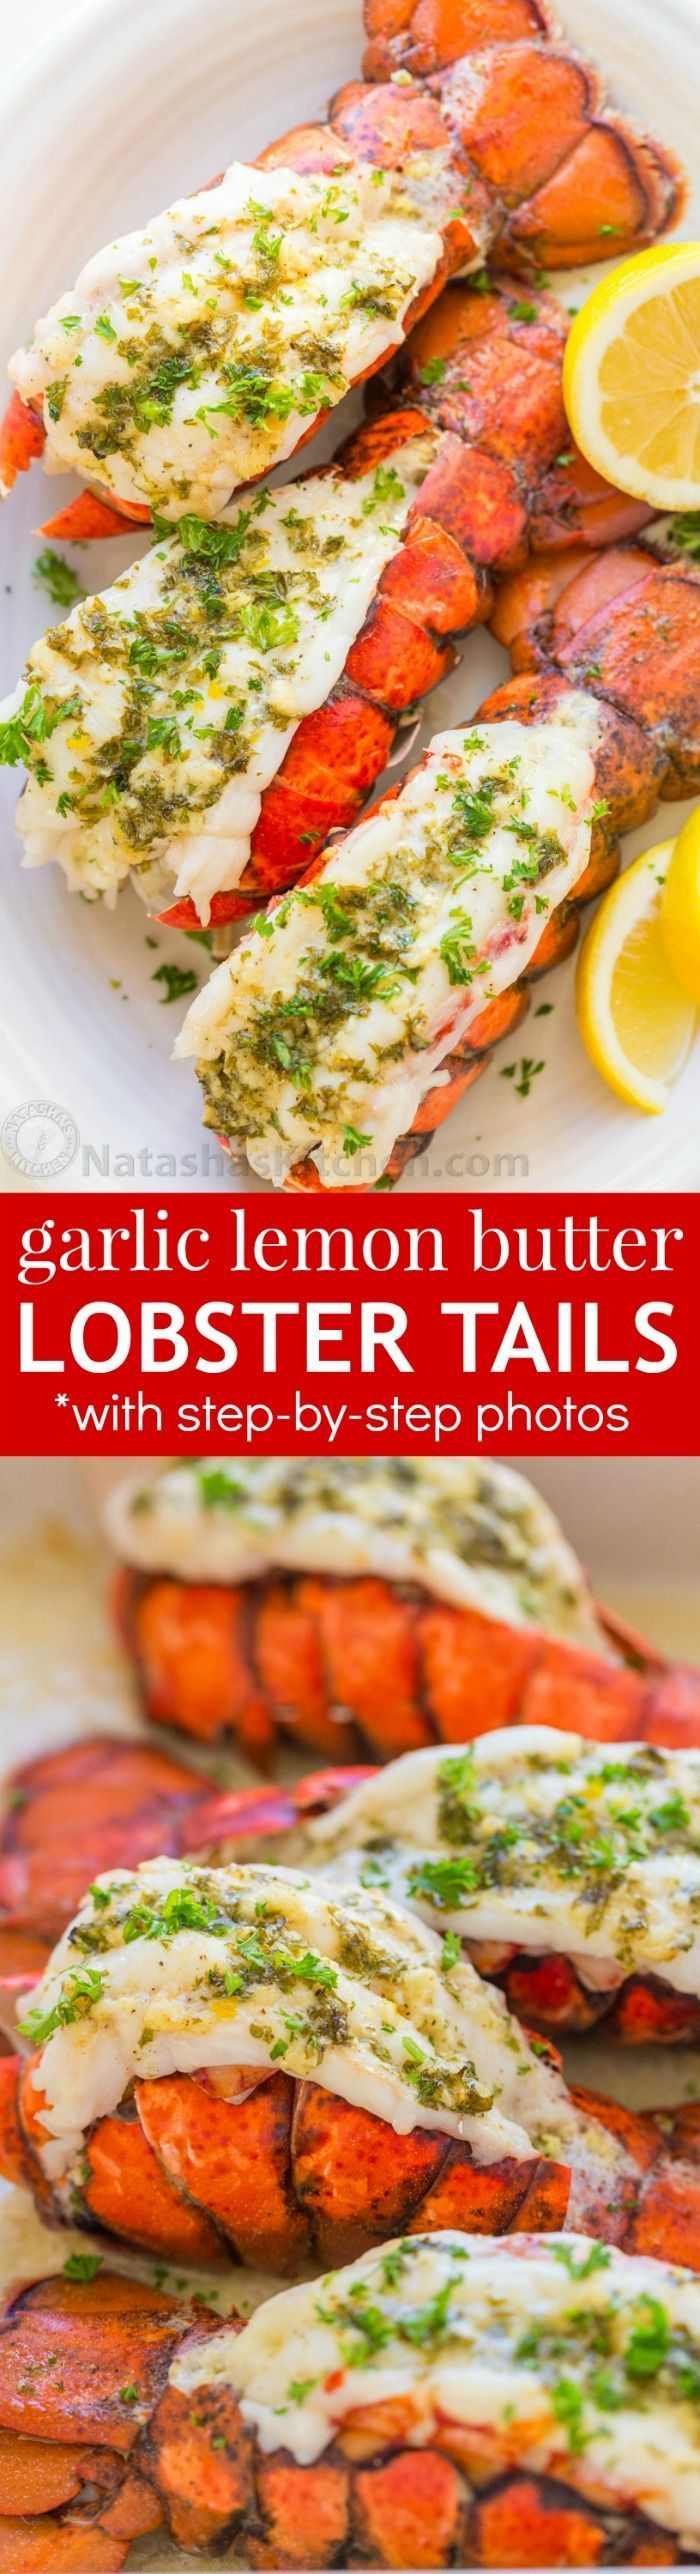 The Only Lobster Tails Recipe You Ll Need Broiled Lobster Tails Are Juicy Flavorful And Quick To Make Lobster Recipes Tail Seafood Dinner Lobster Recipes